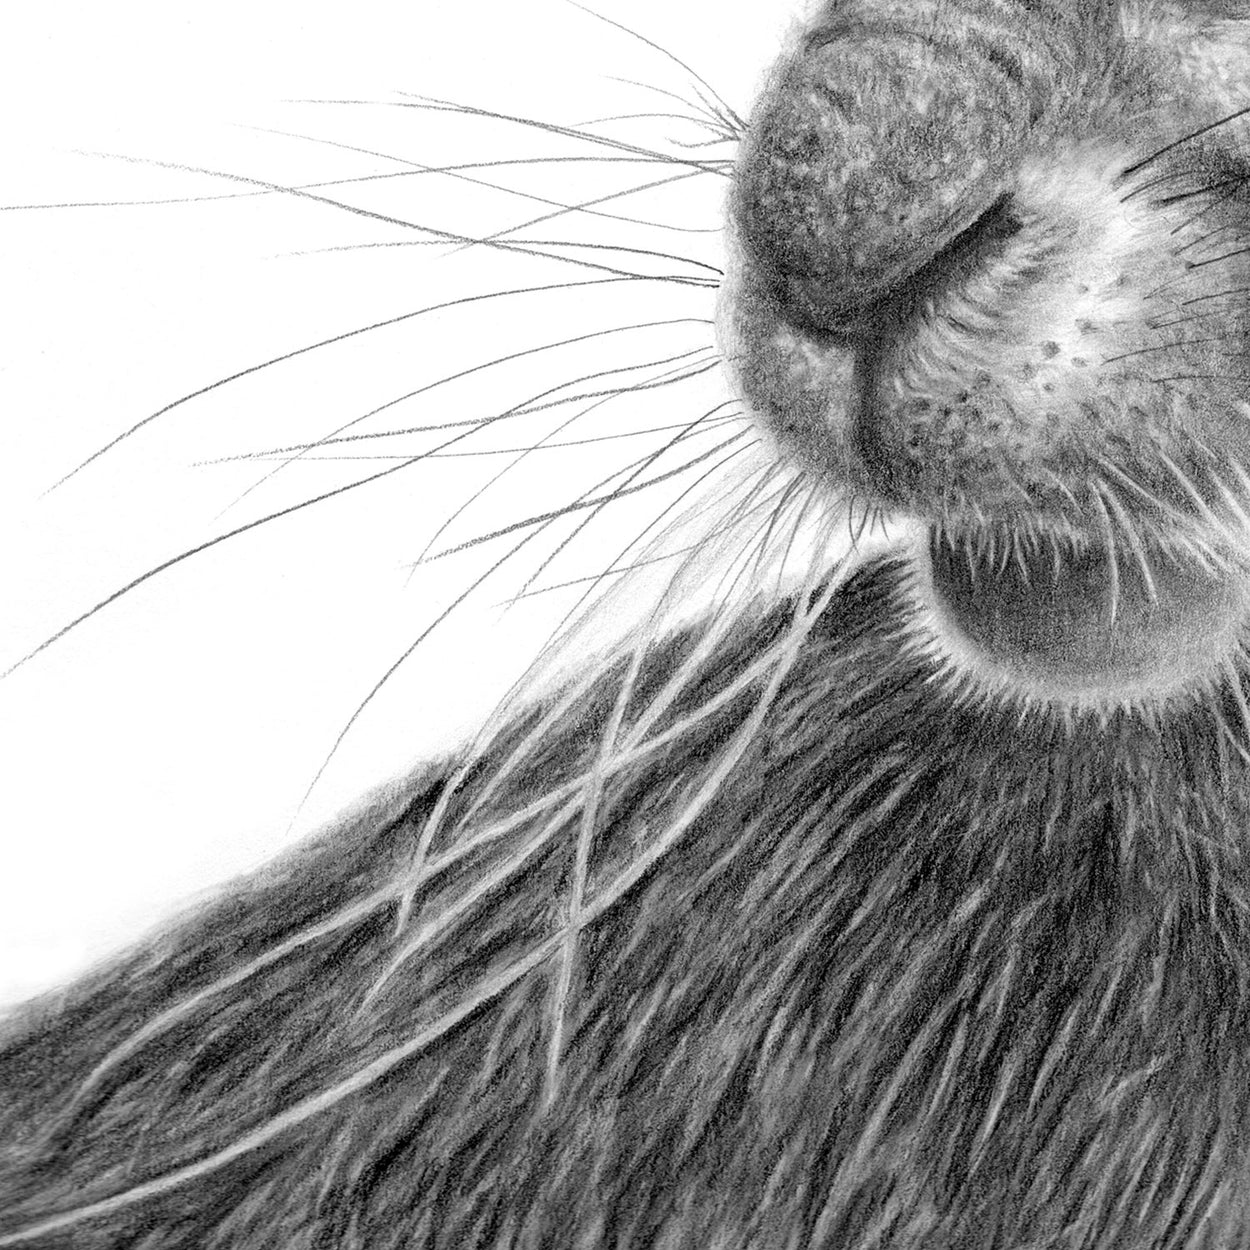 Hare Drawing Nose Close-up 1 - The Thriving Wild